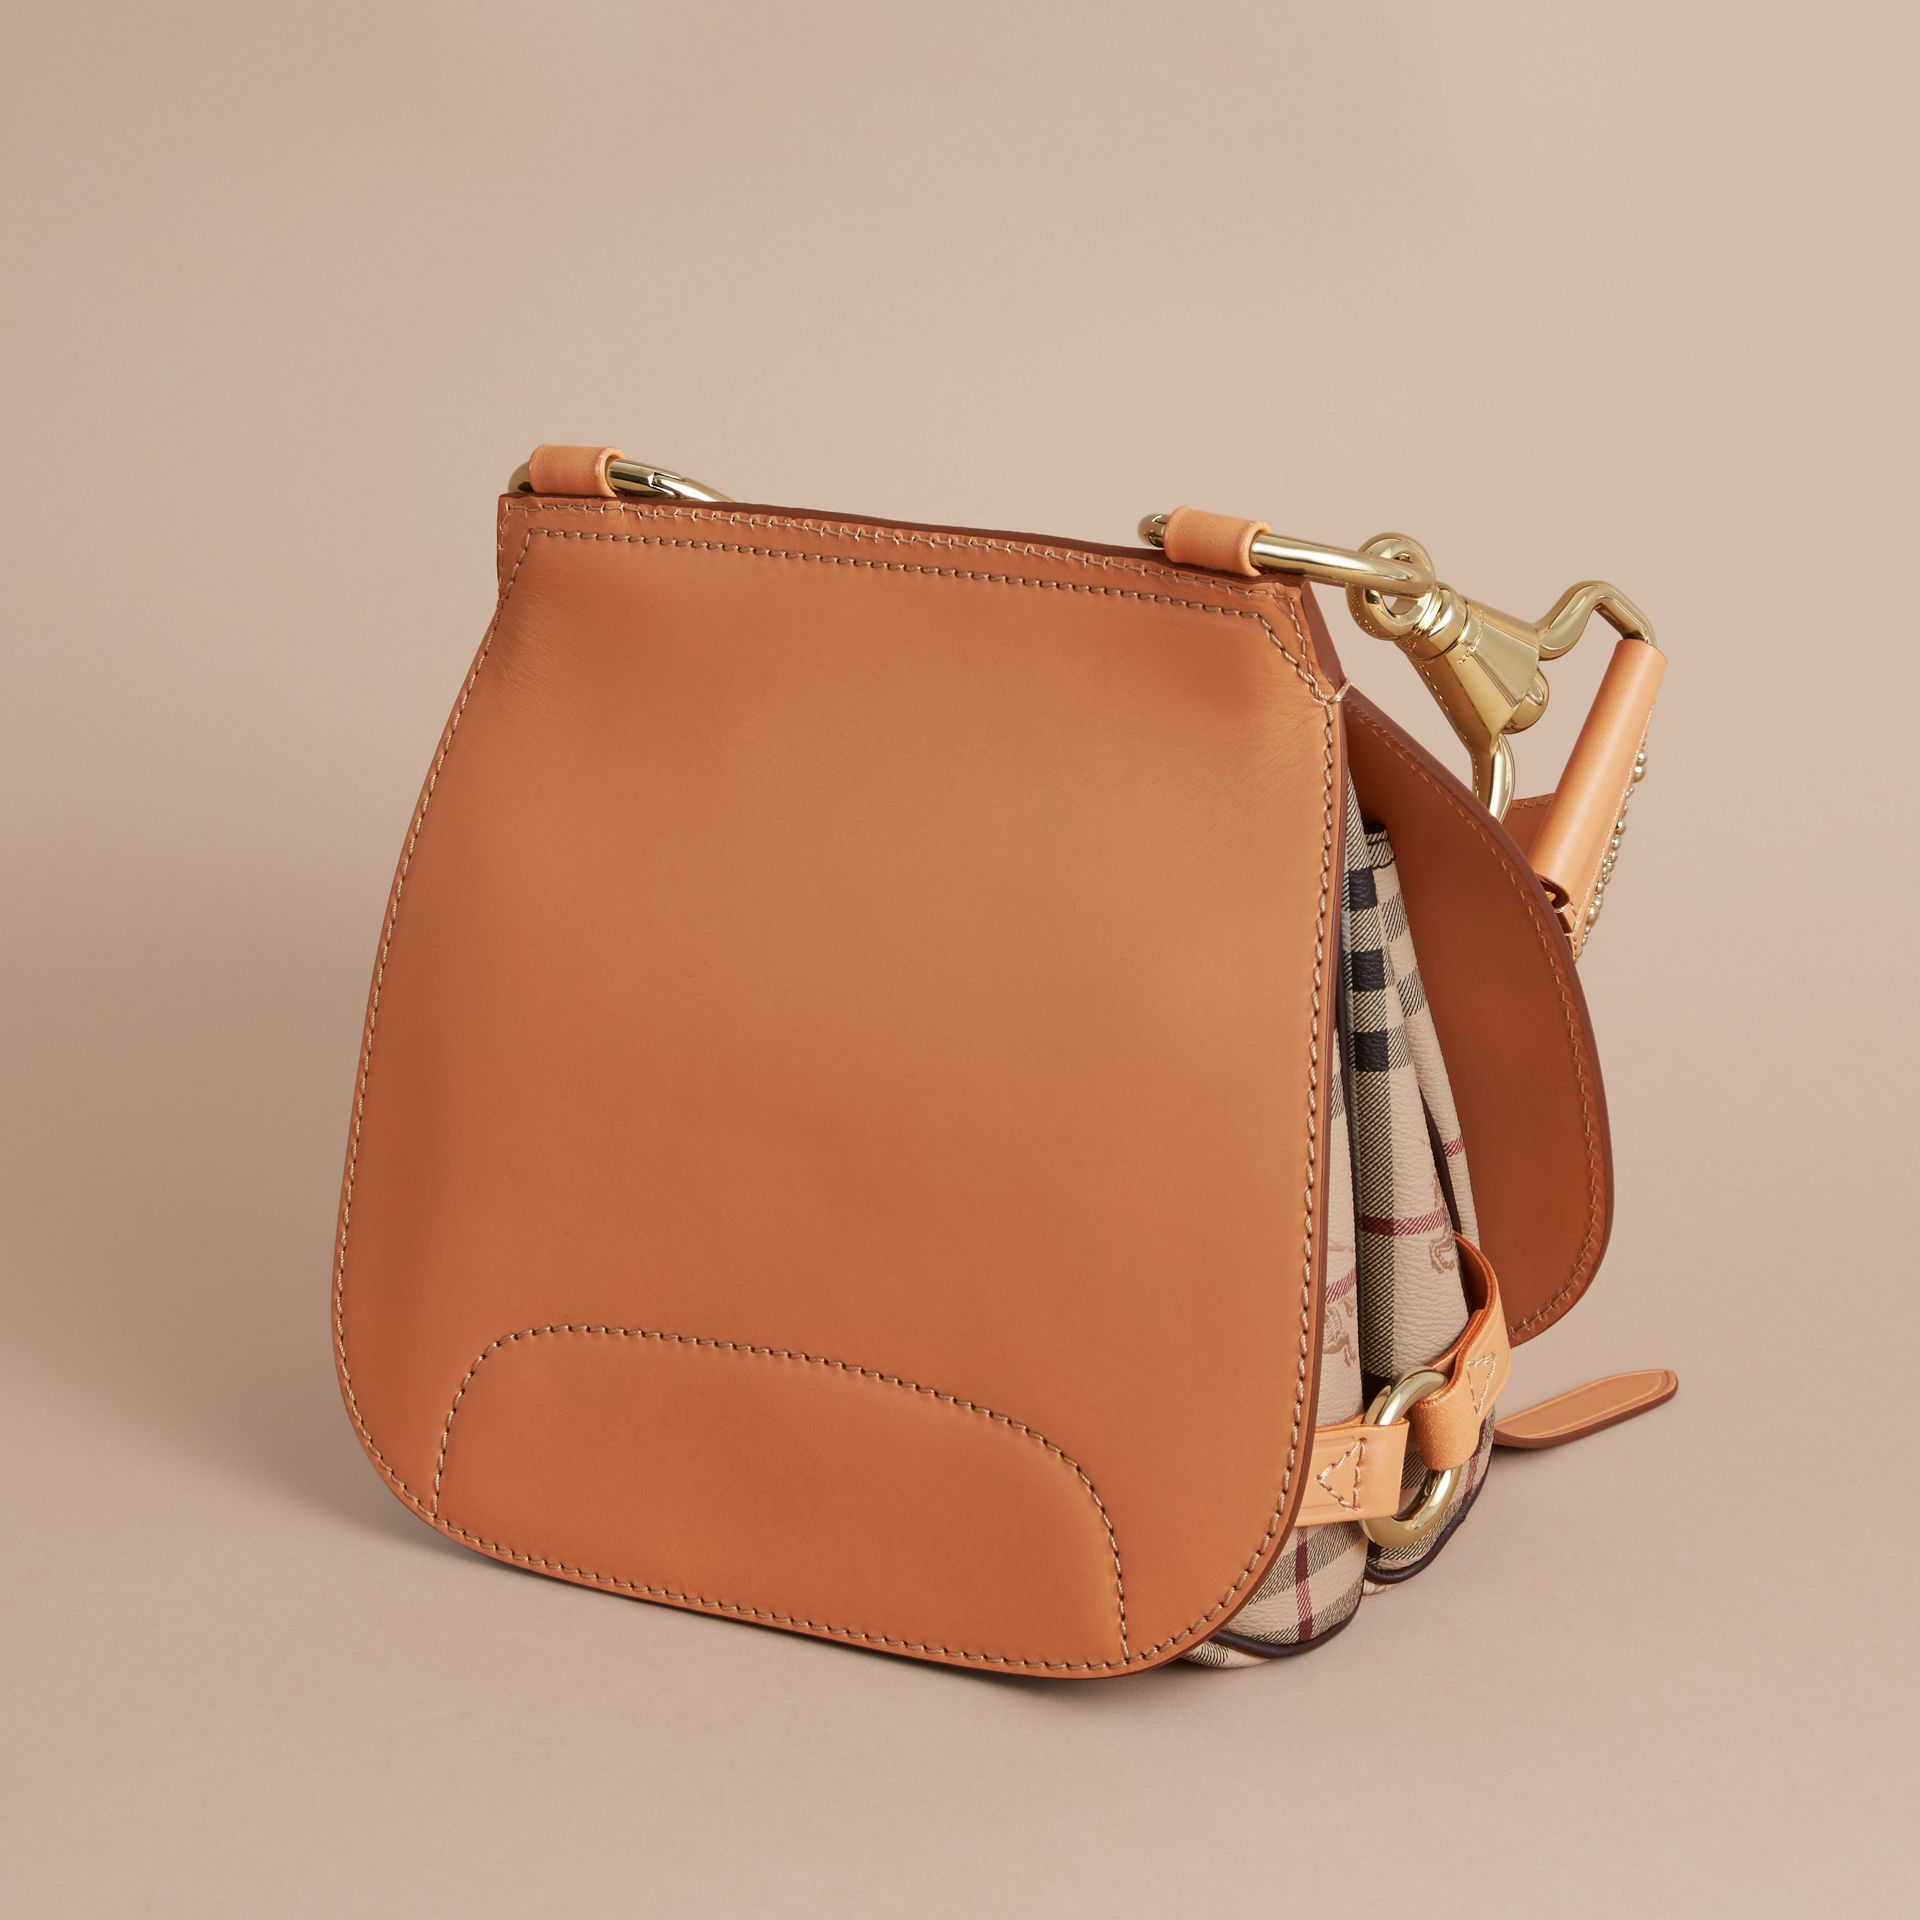 The Bridle Bag in Fruit and Flowers Riveted Leather Pale Clementine - gallery image 4